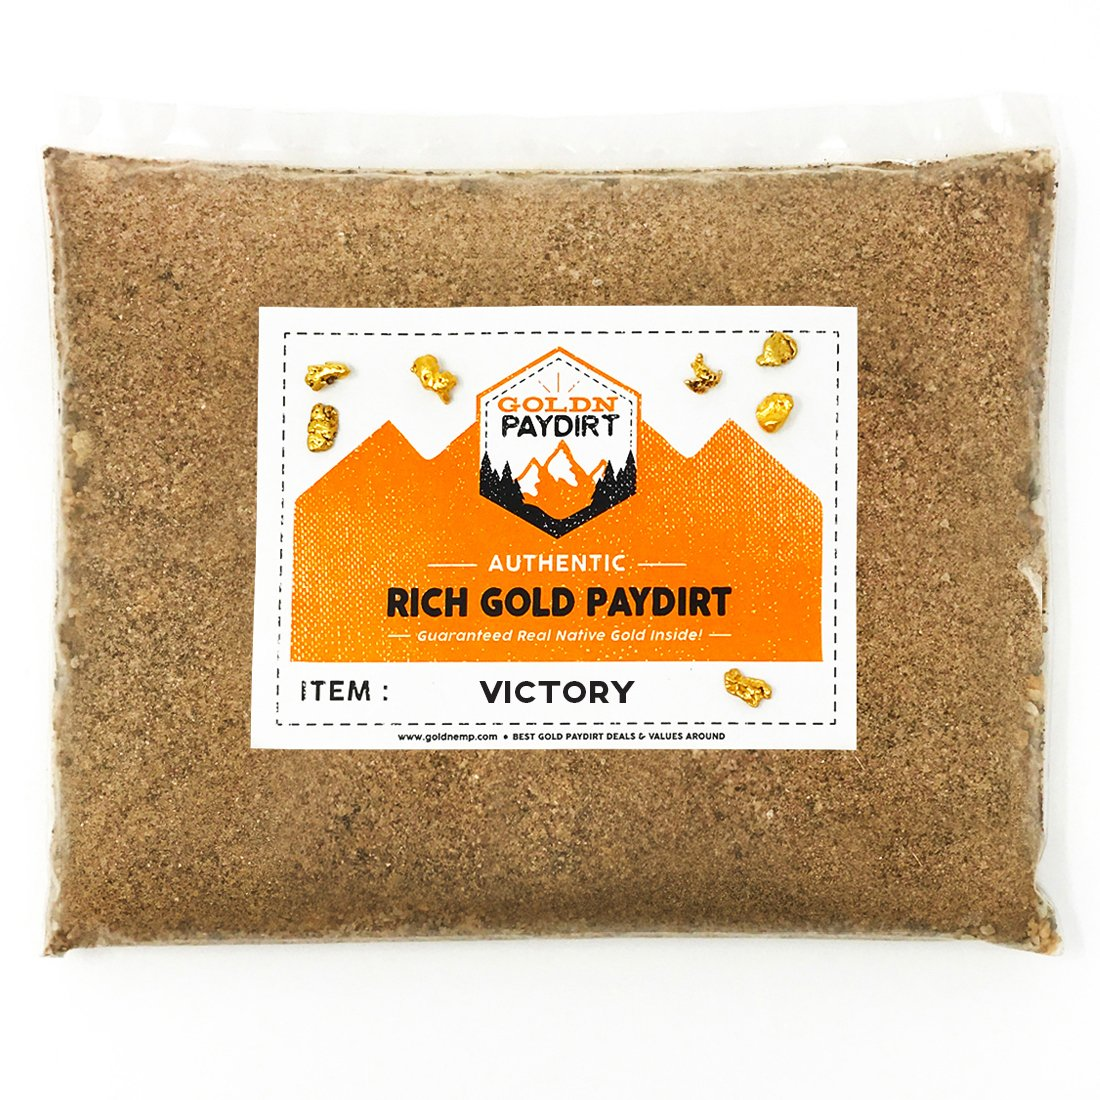 Goldn Gold Paydirt Victory Panning Pay Dirt Bag - Gold Prospecting Concentrate